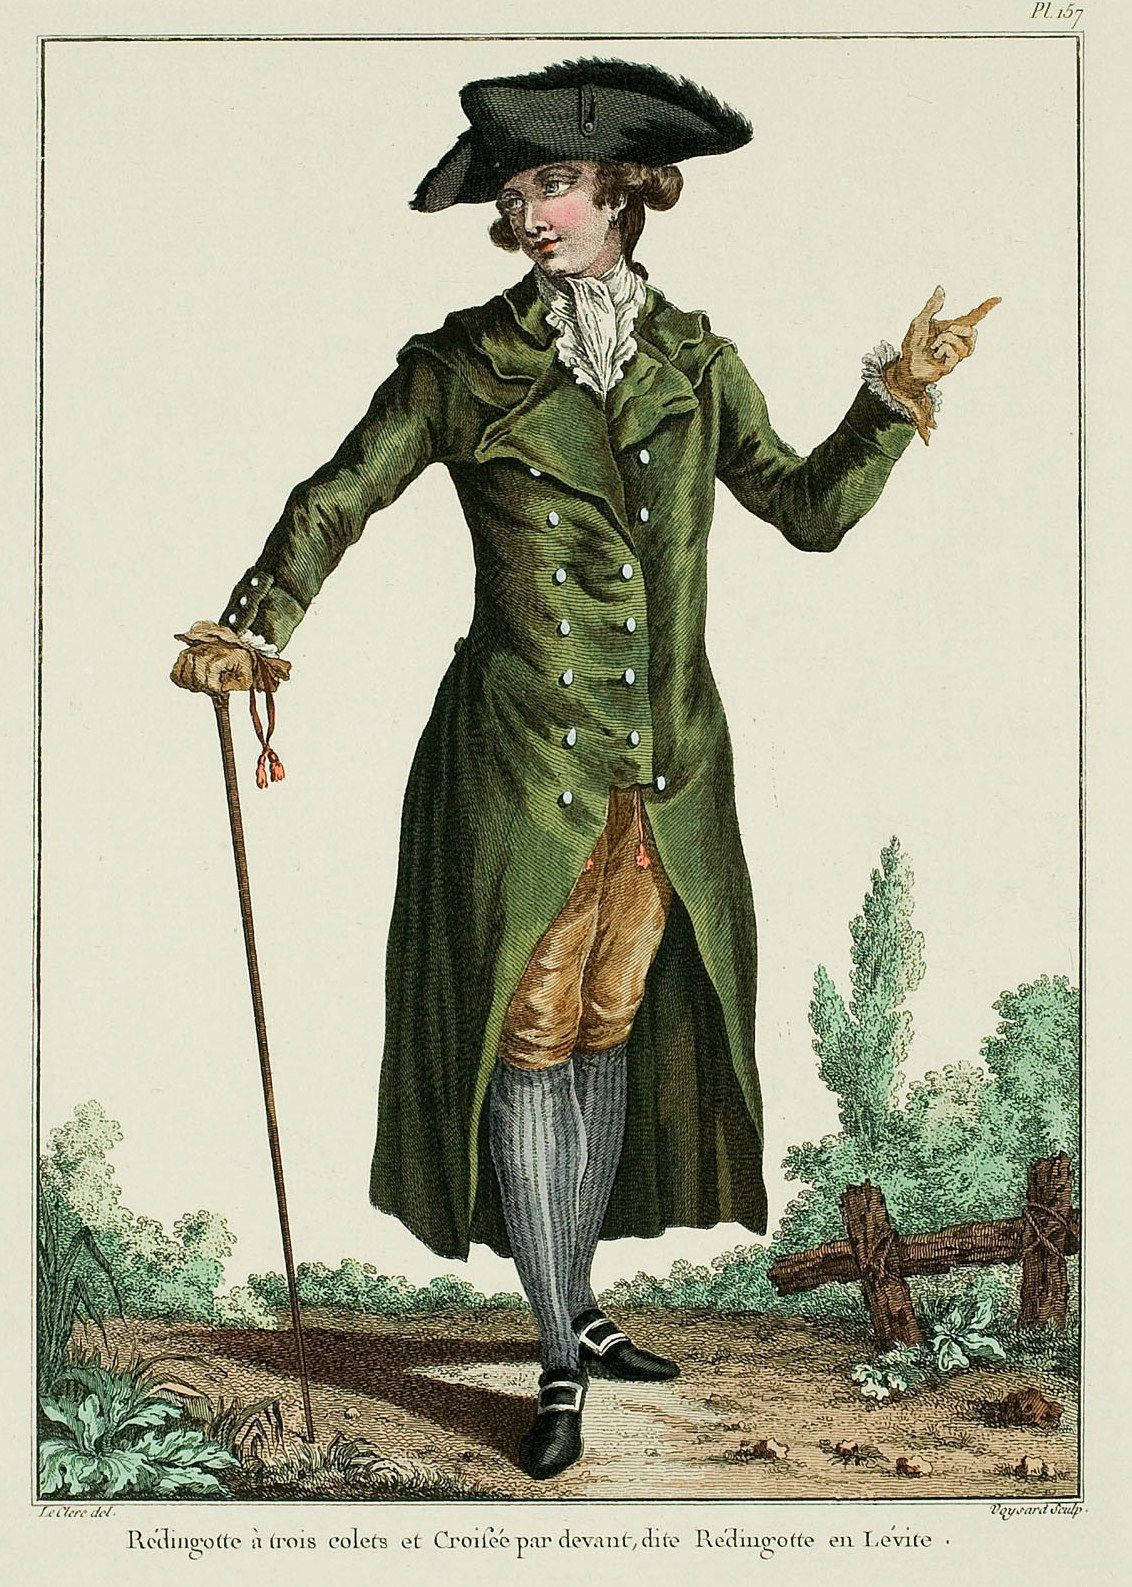 Redingote with three collars, crossed in front, called Lévite Redingote. ( 1781). A Most Beguiling Accomplishment: Galerie des Modes